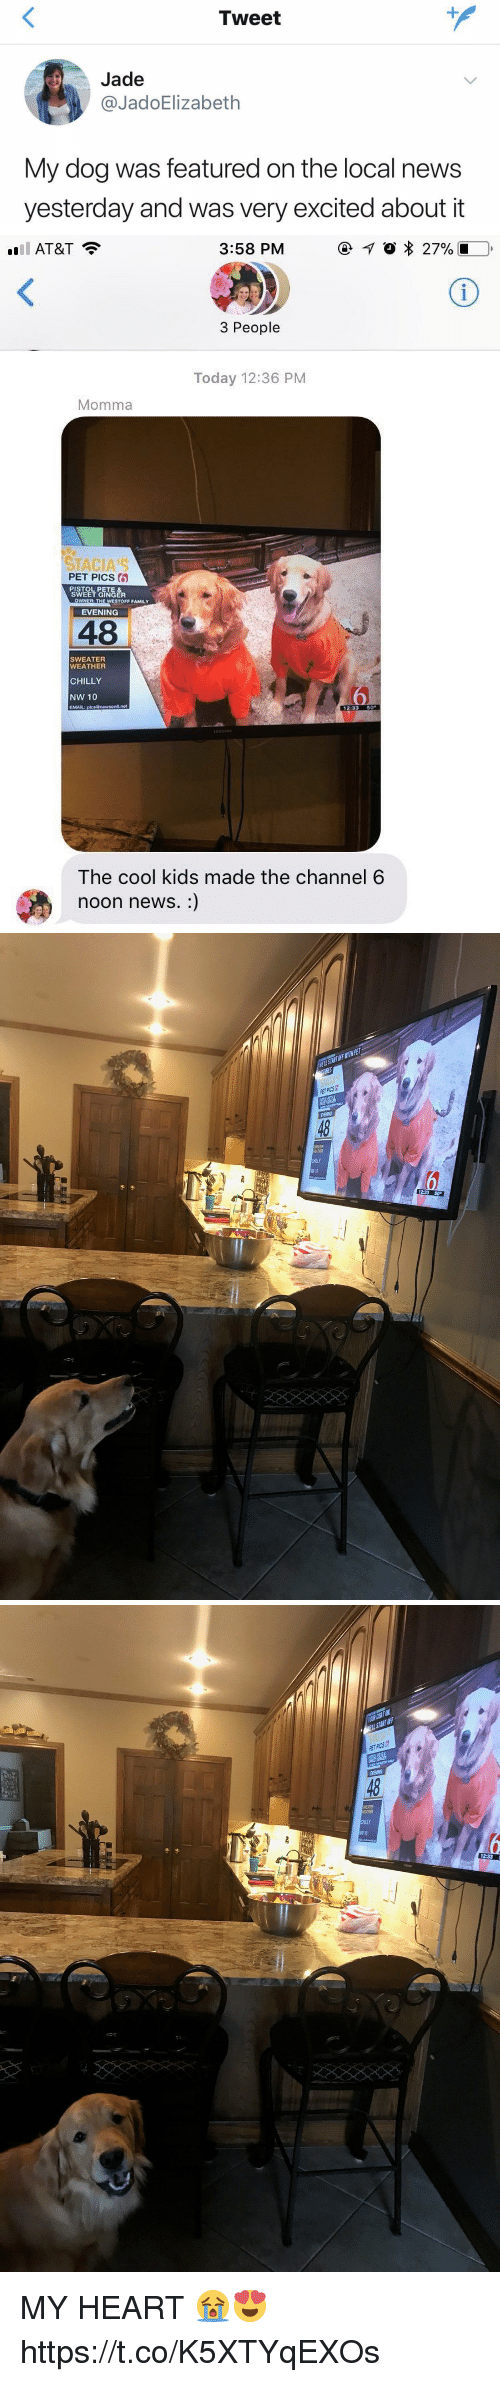 Family, News, and At&t: Tweet  Jade  @JadoElizabeth  My dog was featured on the local news  yesterday and was very excited about it   ''il AT&T  3:58 PM  @イ。* 27% l  3 People  Today 12:36 PM  Momma  STACIA'S  PET PICS  S ONG  EVENING  WNER THE WESTOFF FAMILY  48  SWEATER  WEATHER  CHILLY  NW 10  MALS PI  12:3350%  The cool kids made the channel 6  noon news.:)   EL START OFF WITHPE  49  HLLY   48  CHILLY MY HEART 😭😍 https://t.co/K5XTYqEXOs